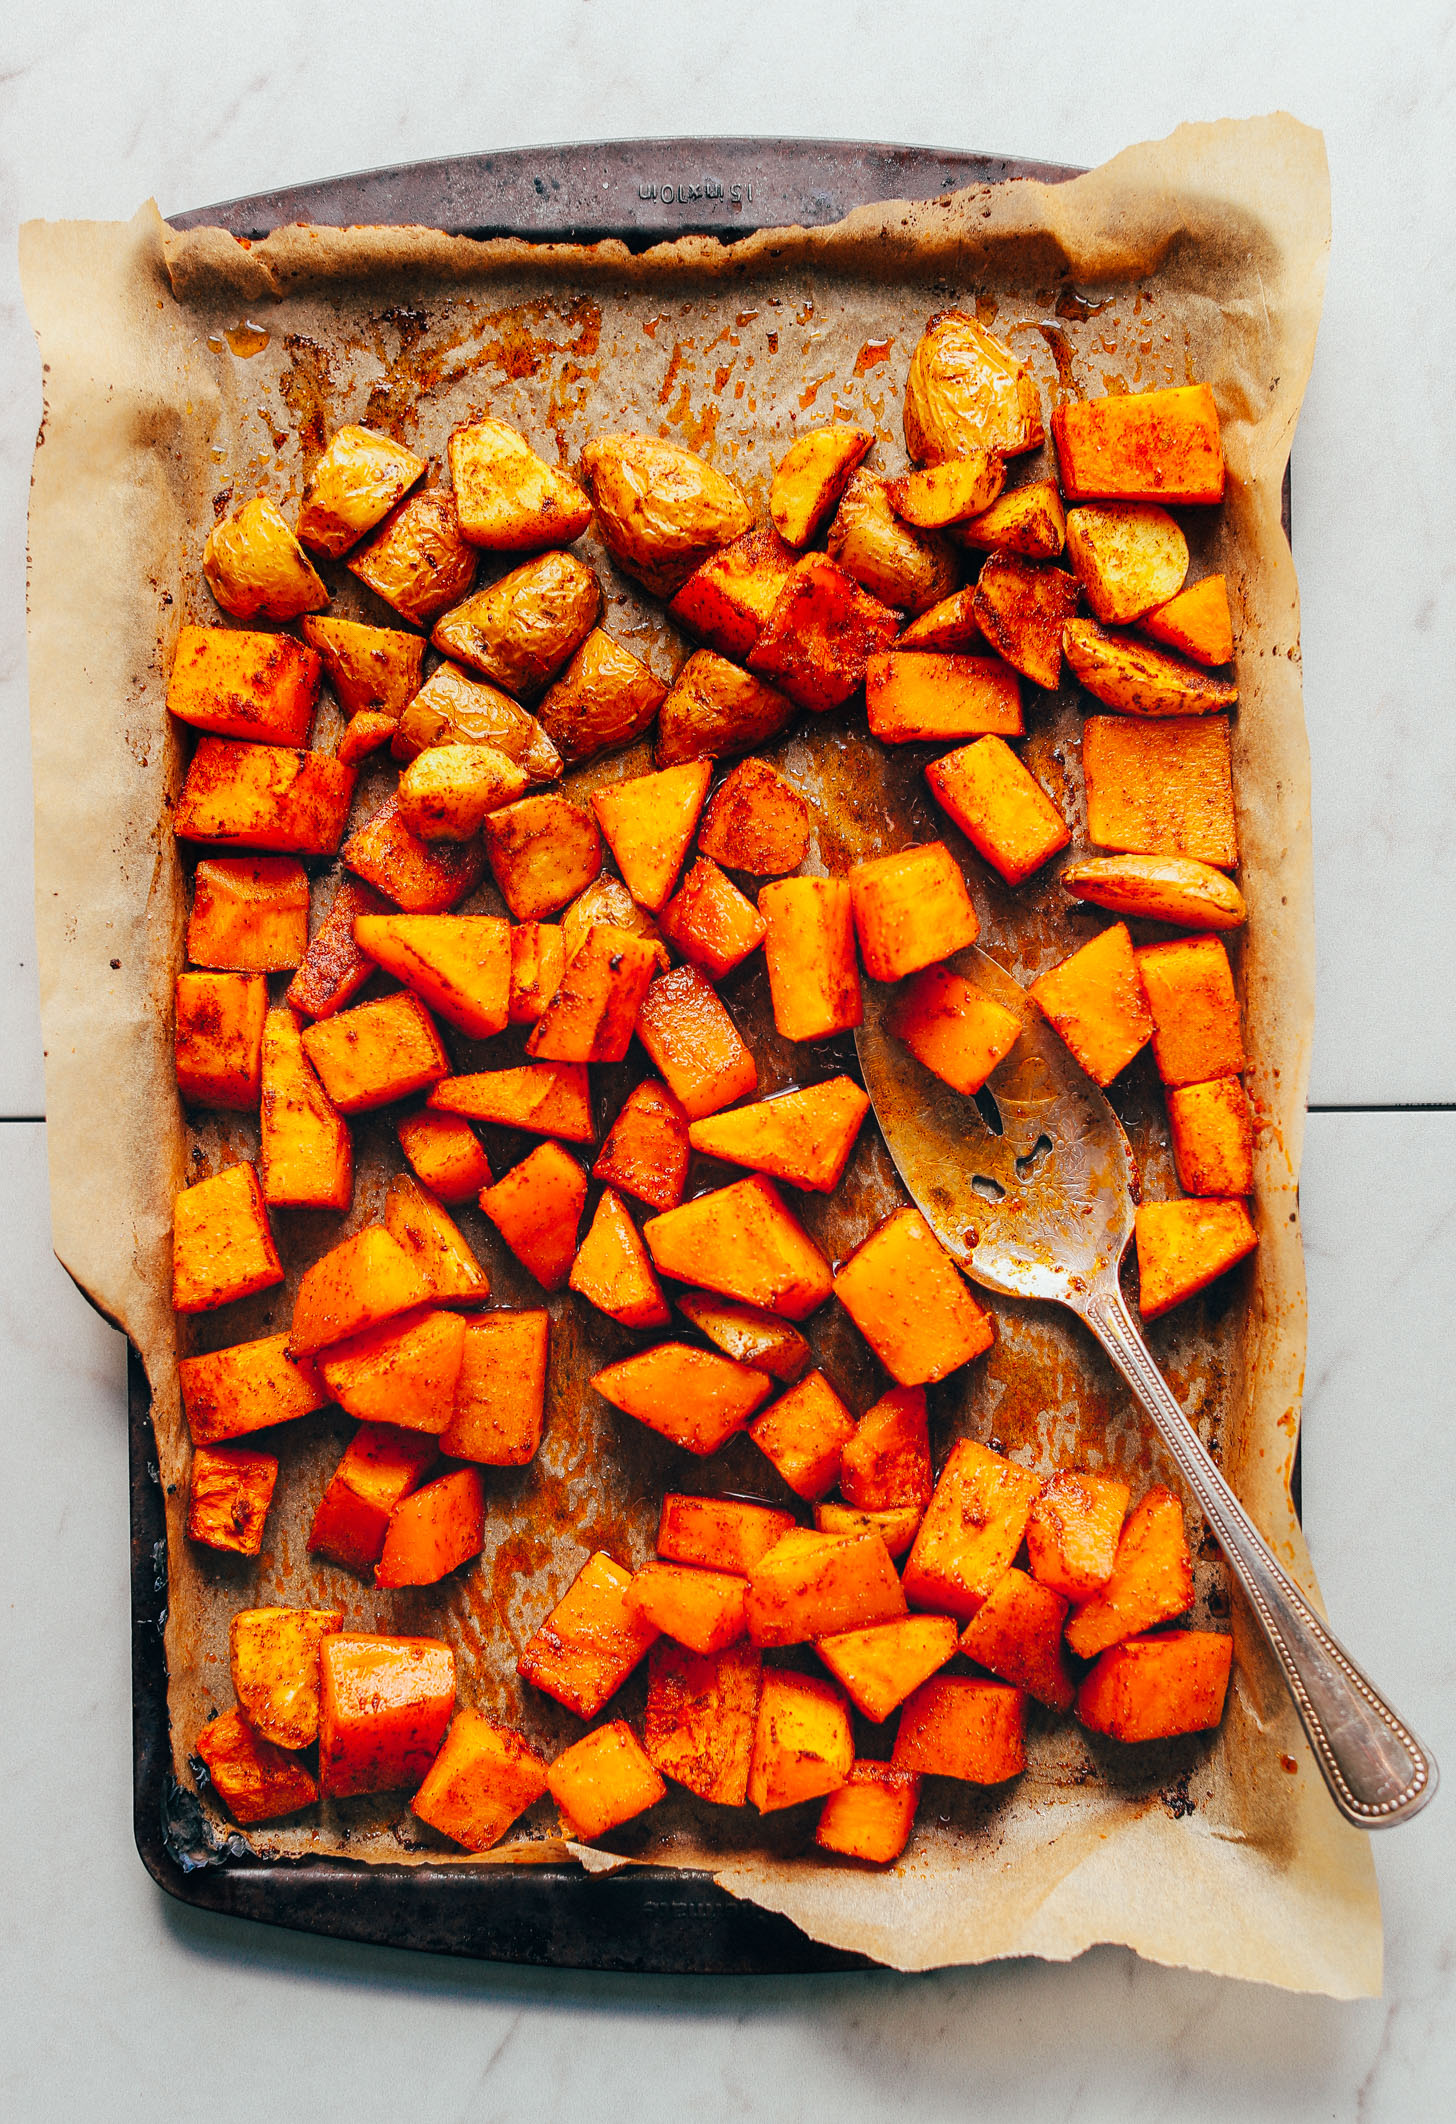 Tray of freshly roasted potatoes and butternut squash